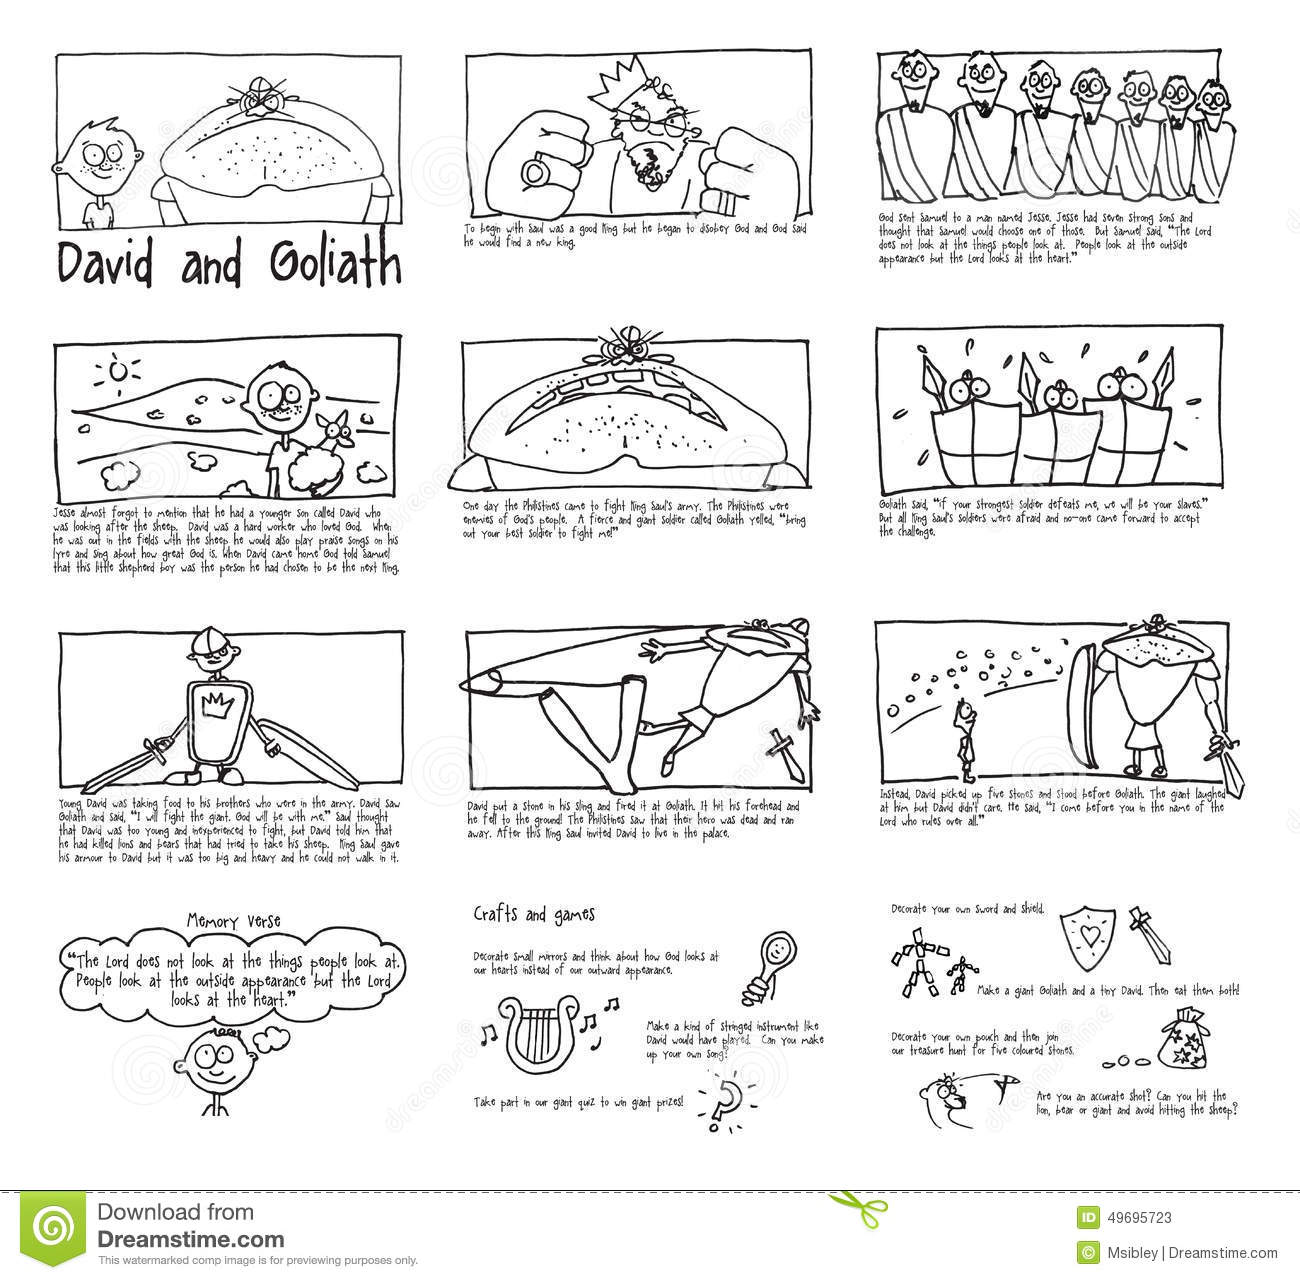 David And Goliath Sunday School Comic Strip Royalty Free